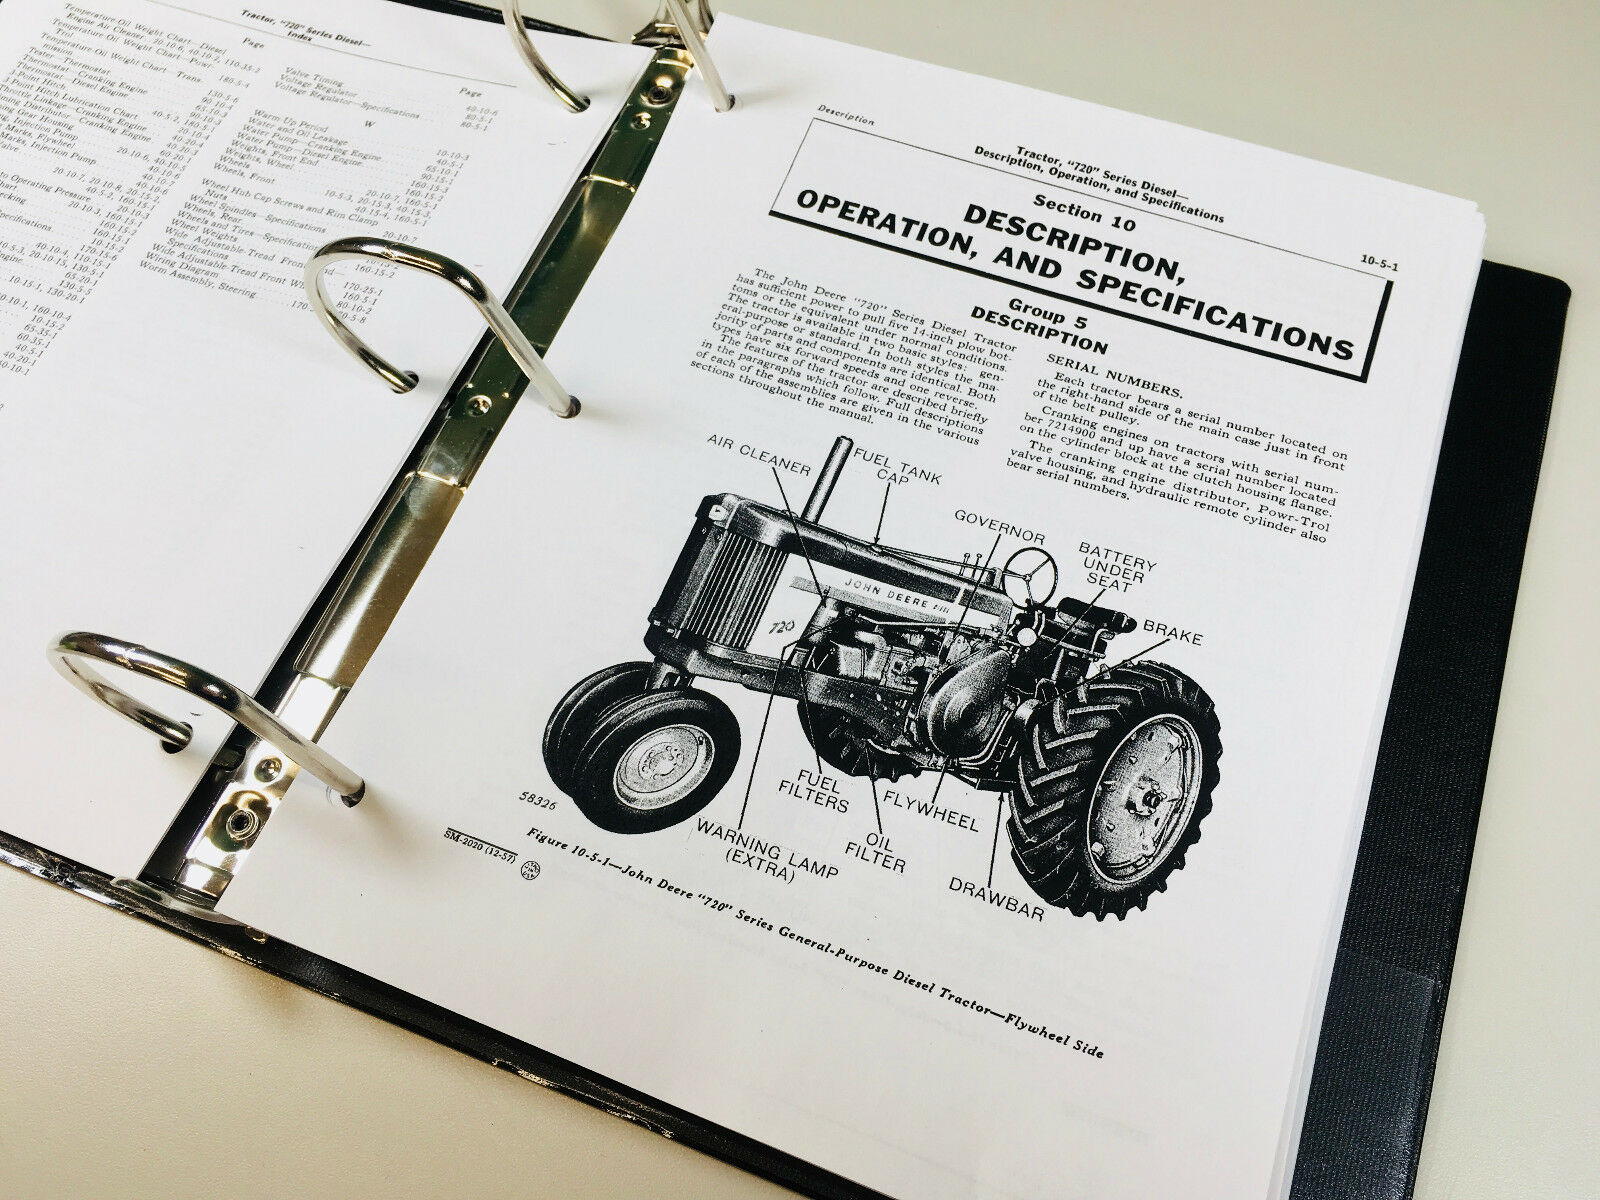 This service manual shows you how to repair and overhaul components